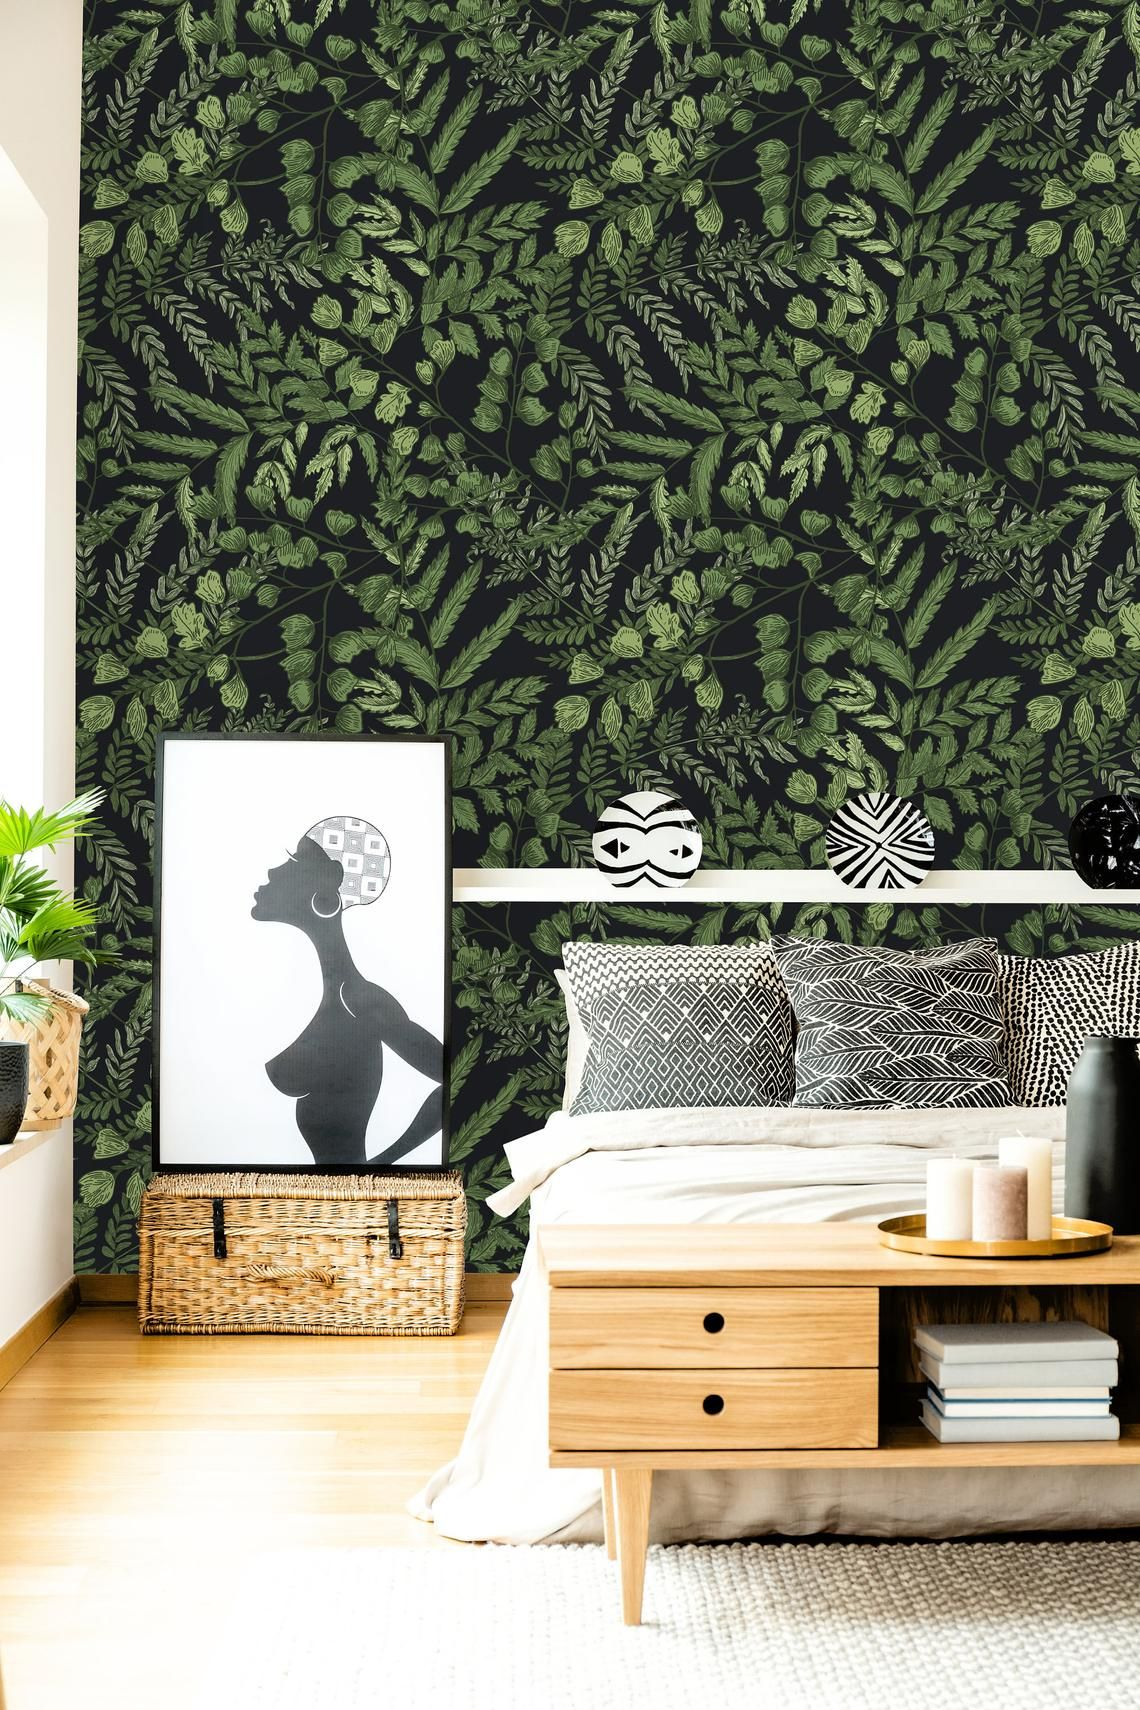 Removable Wallpaper Peel And Stick Wallpaper Self Adhesive Etsy Removable Wallpaper Wallpaper Roll Peel And Stick Wallpaper